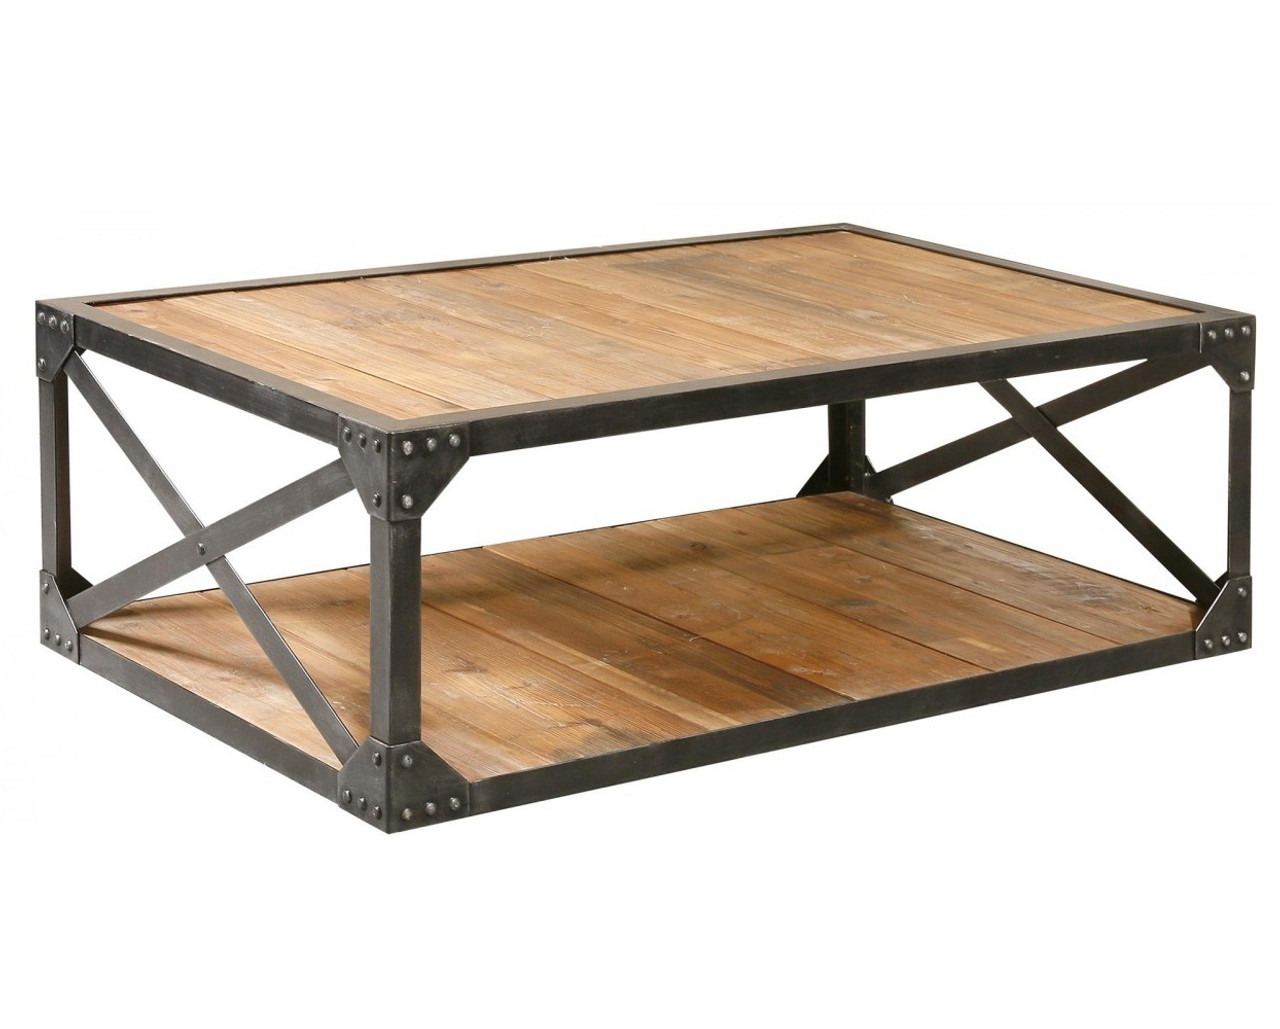 wooden coffee tables. industrial metal and wood coffee table wooden tables f